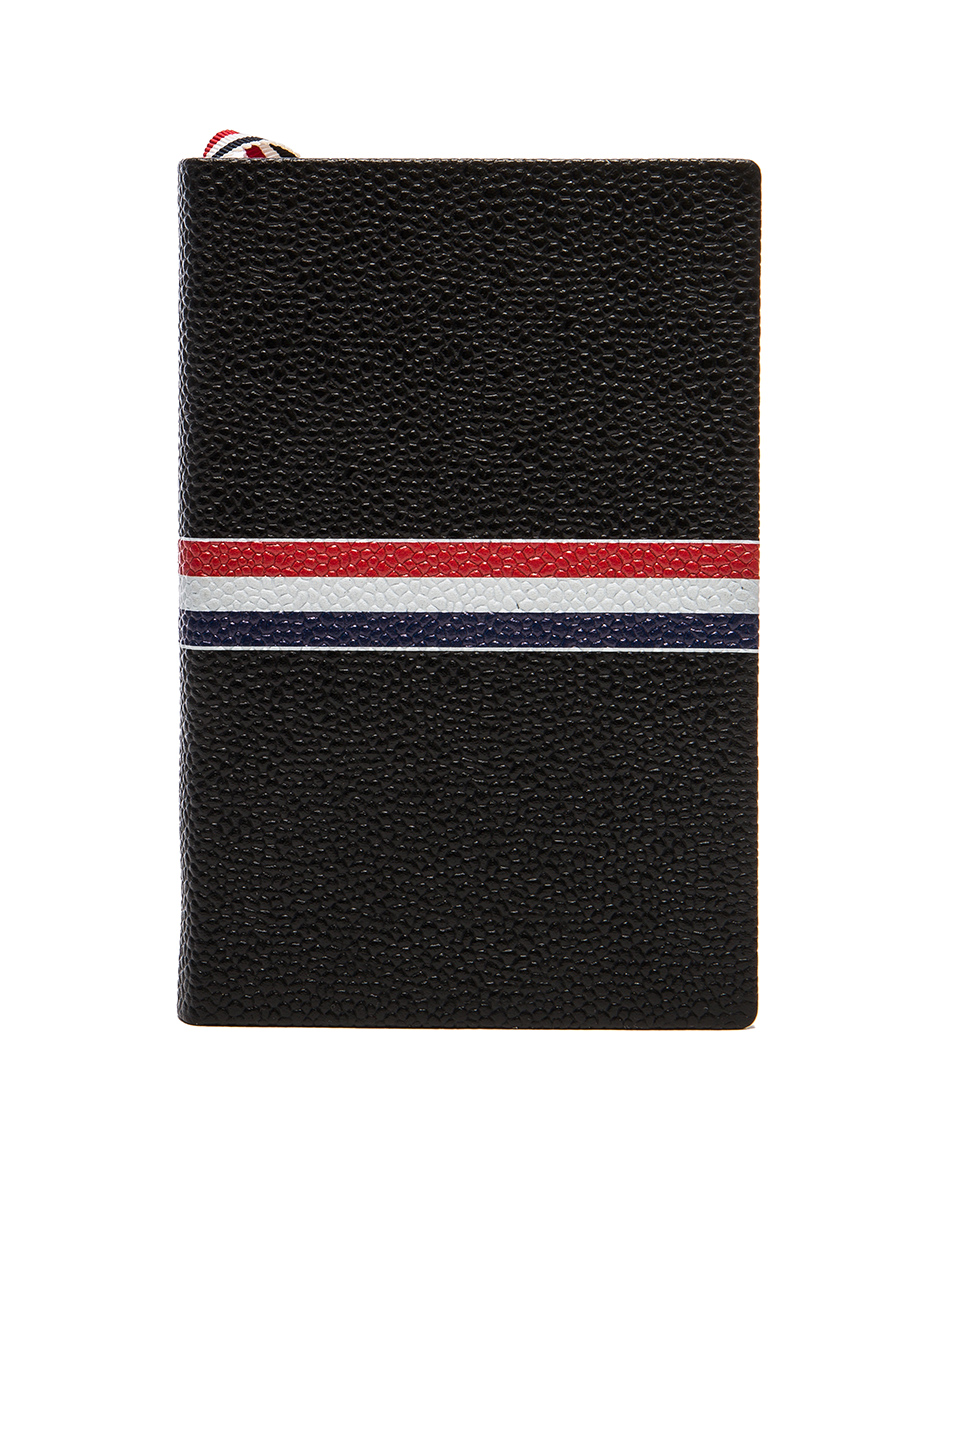 Thom Browne Small Notebook in Black